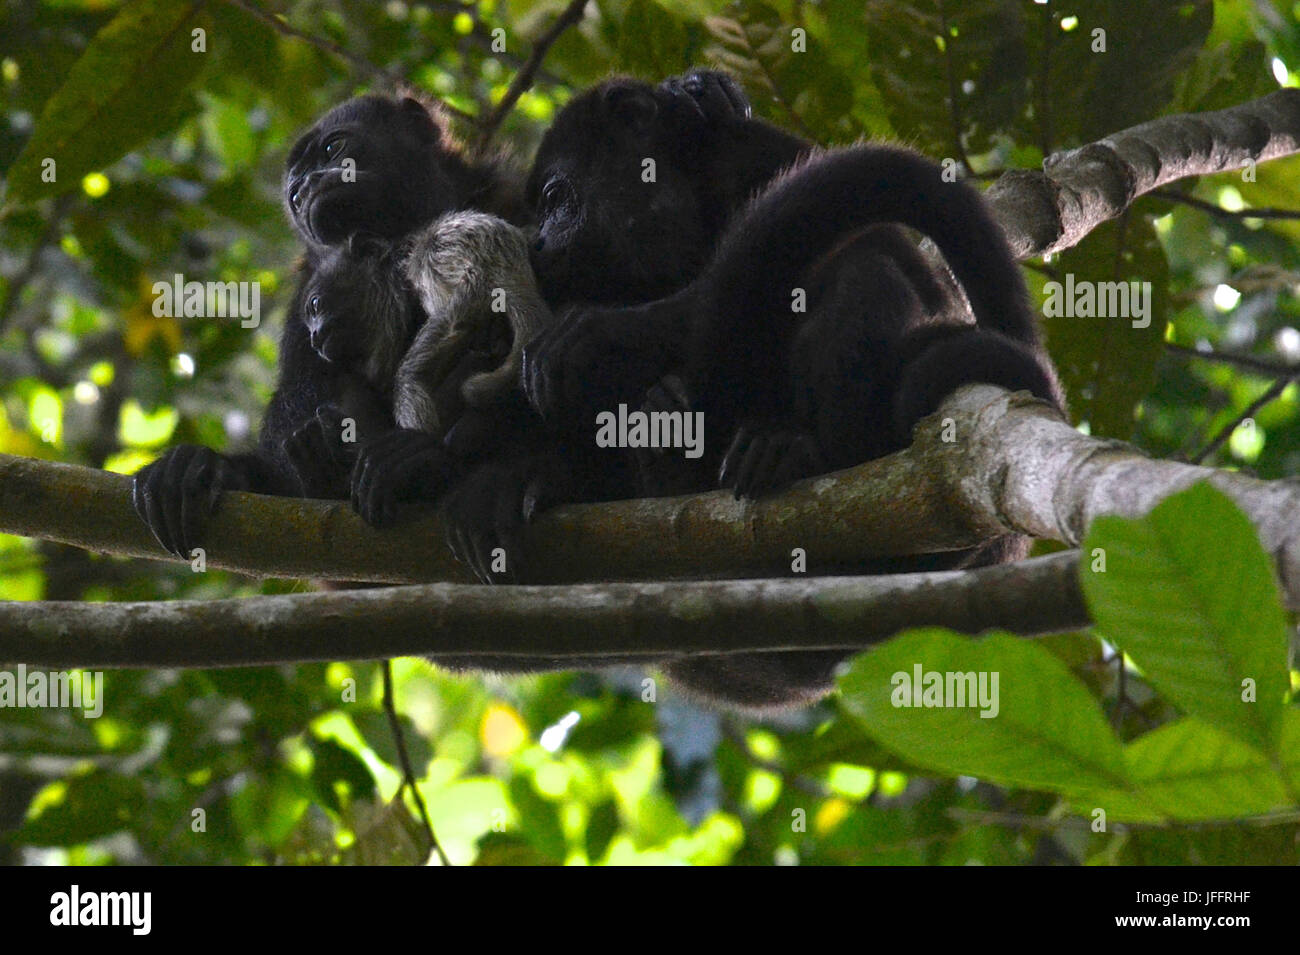 A family of howler monkeys, Alouatta palliata, on Barro Colorado Island. - Stock Image